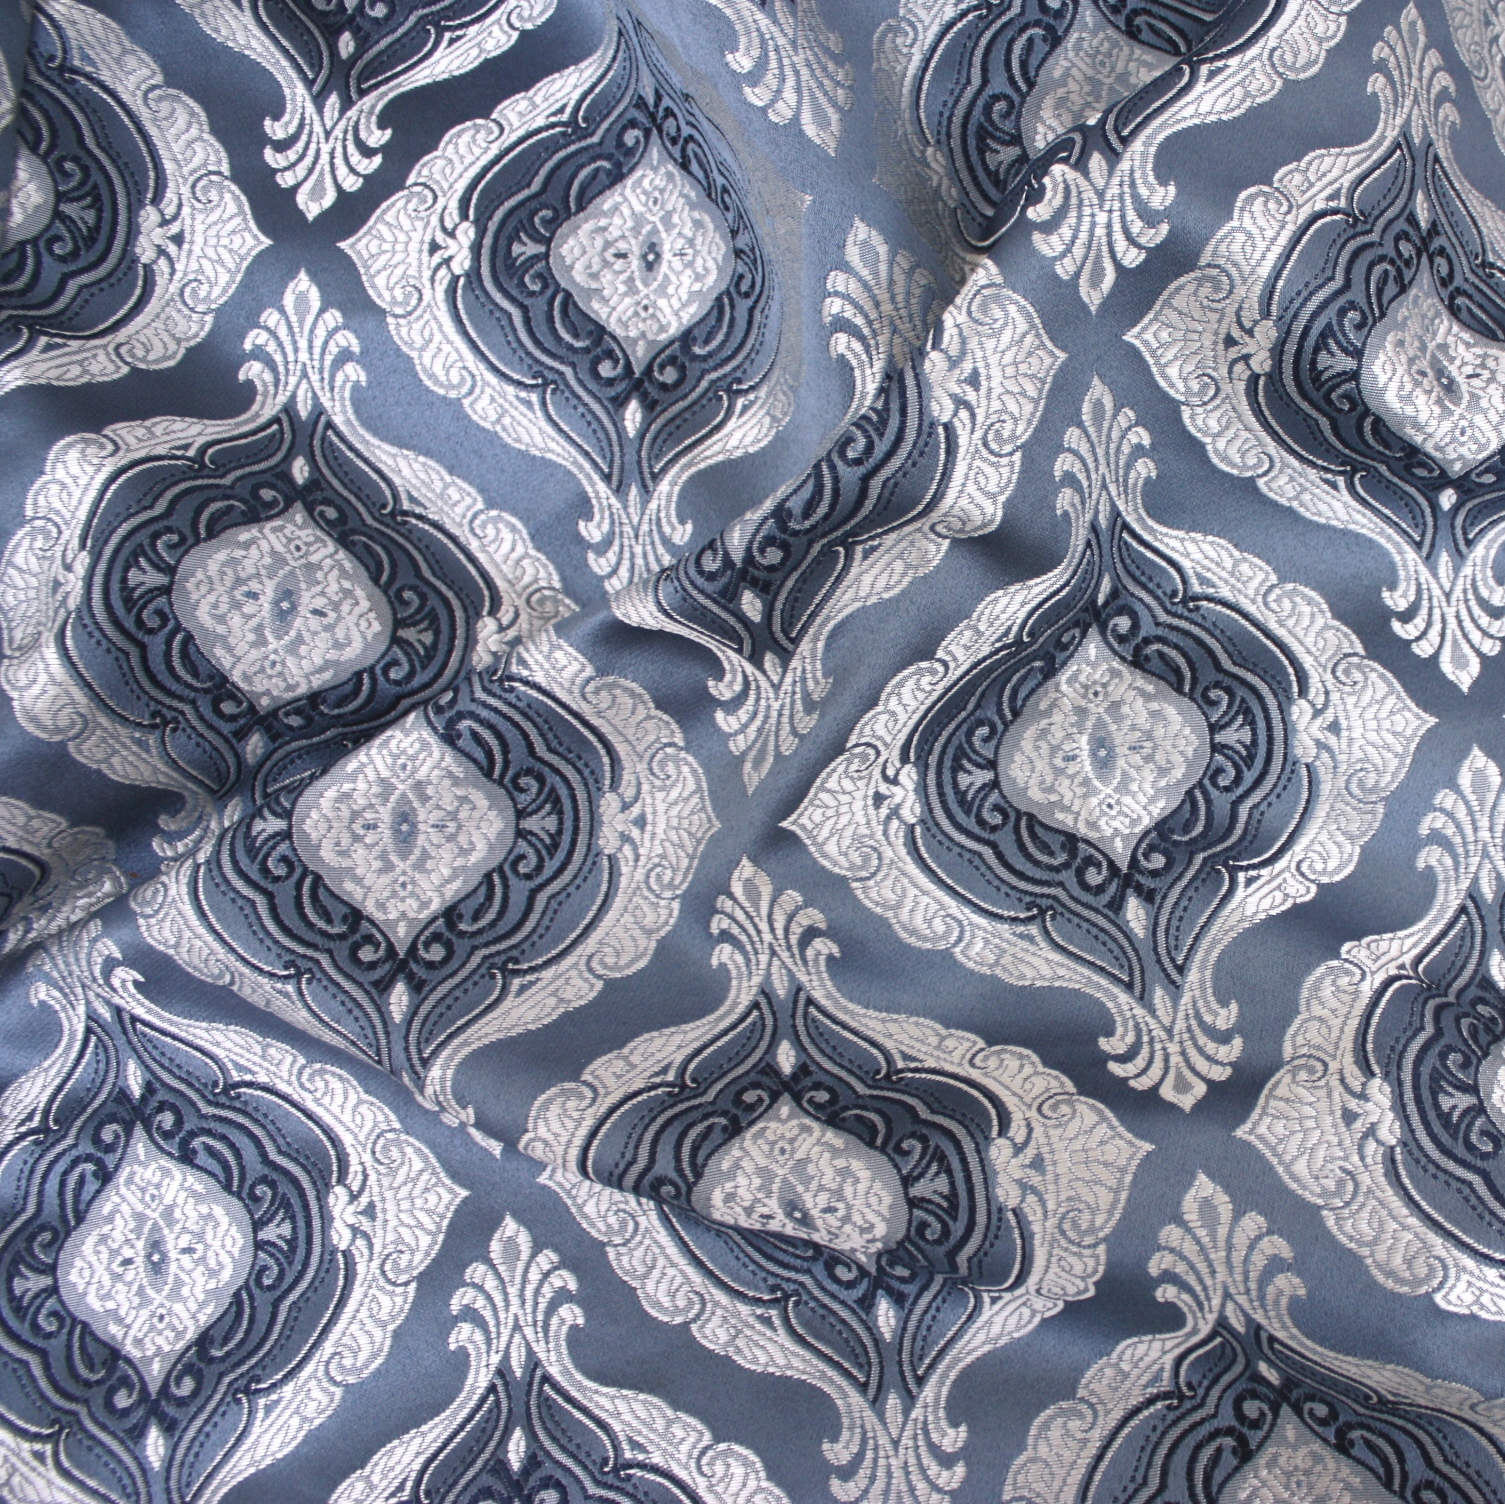 blue chair pads ergonomic large person silver majestic damask table linen rental tablecloth